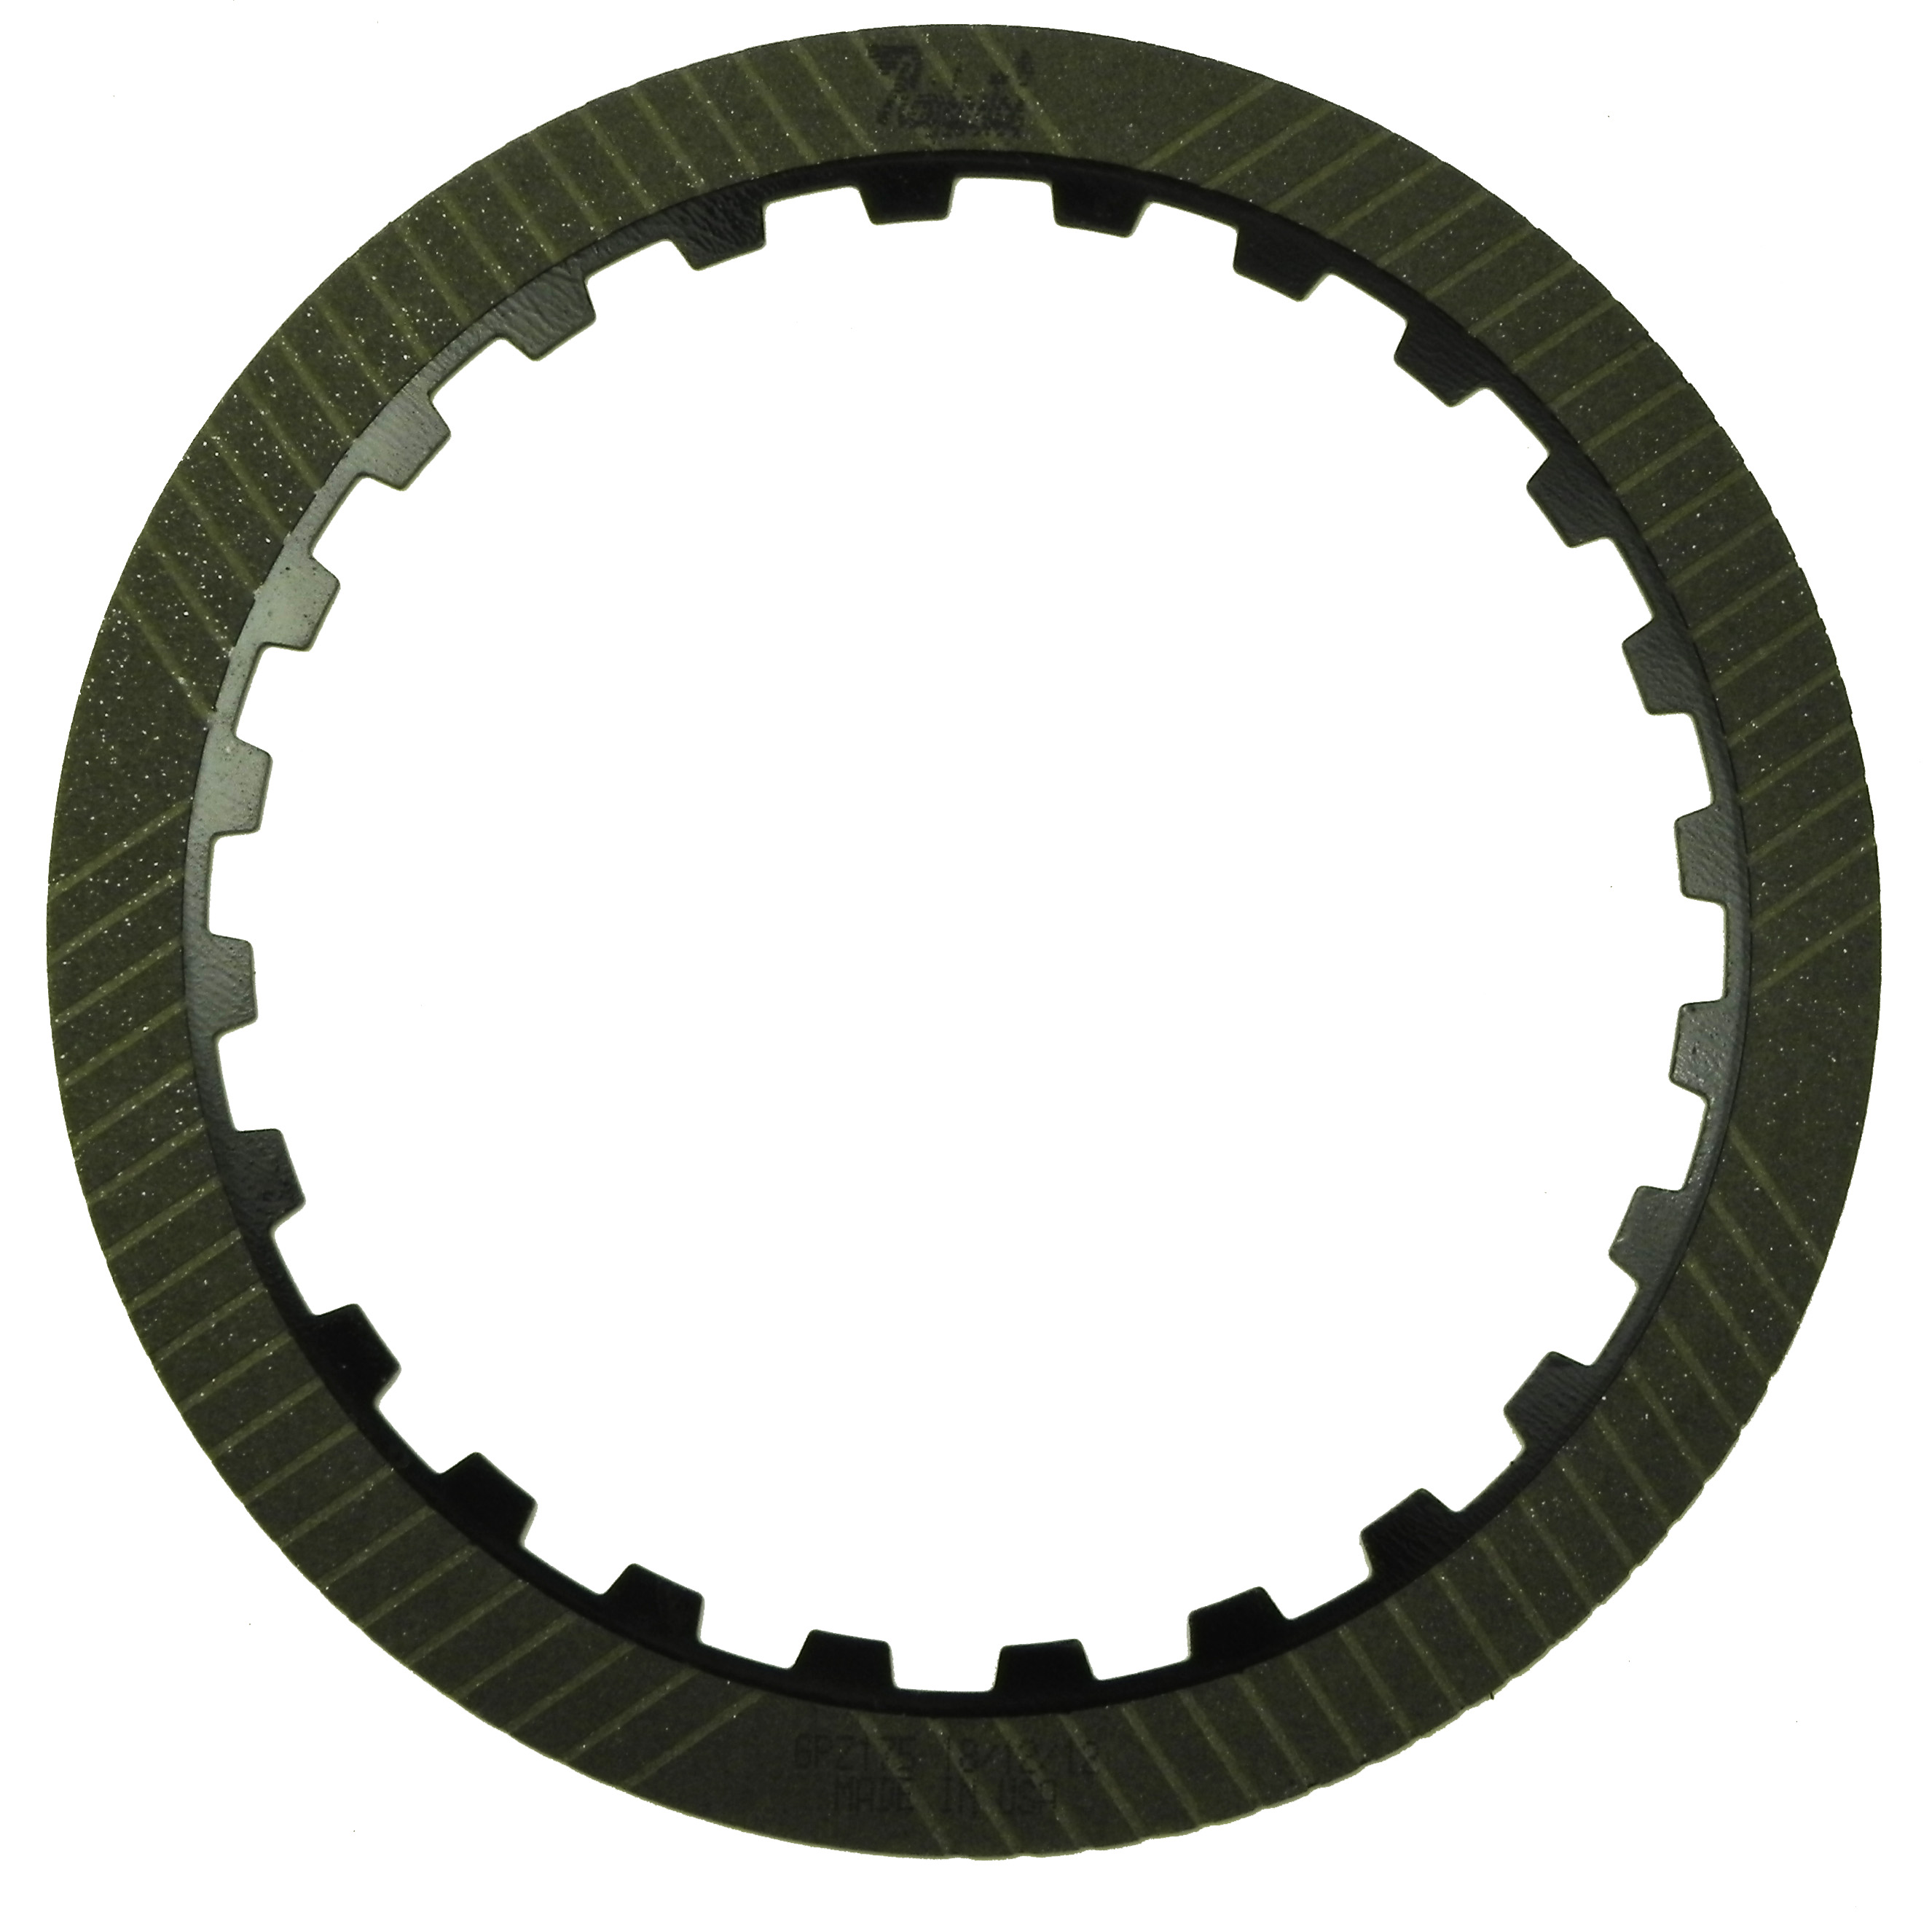 LT1000, LT2000, LT2400 SERIES GPZ Friction Clutch Plate